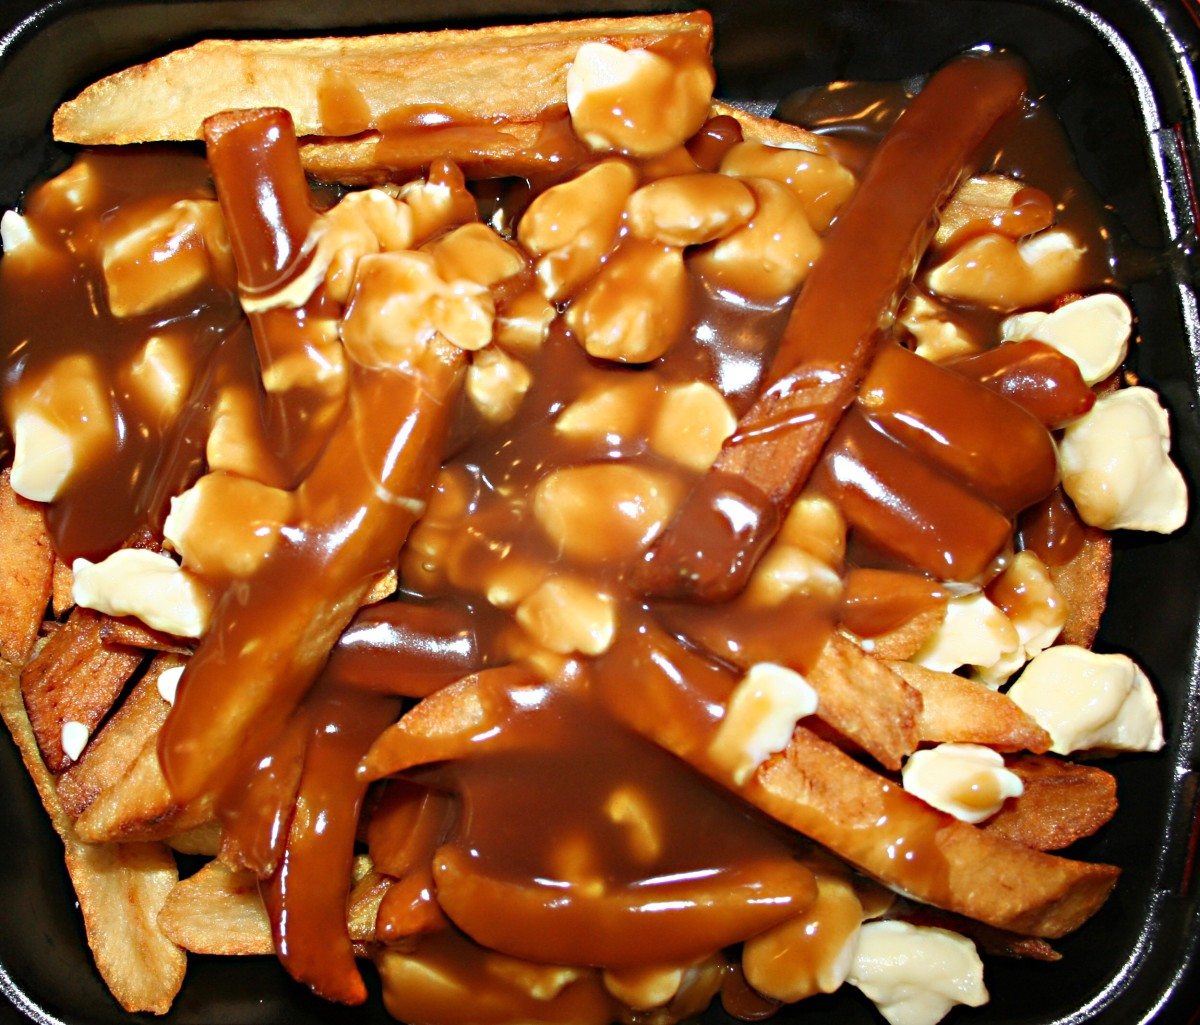 Poutine is a delicious mess made from French fries, cheese curds, and gravy.